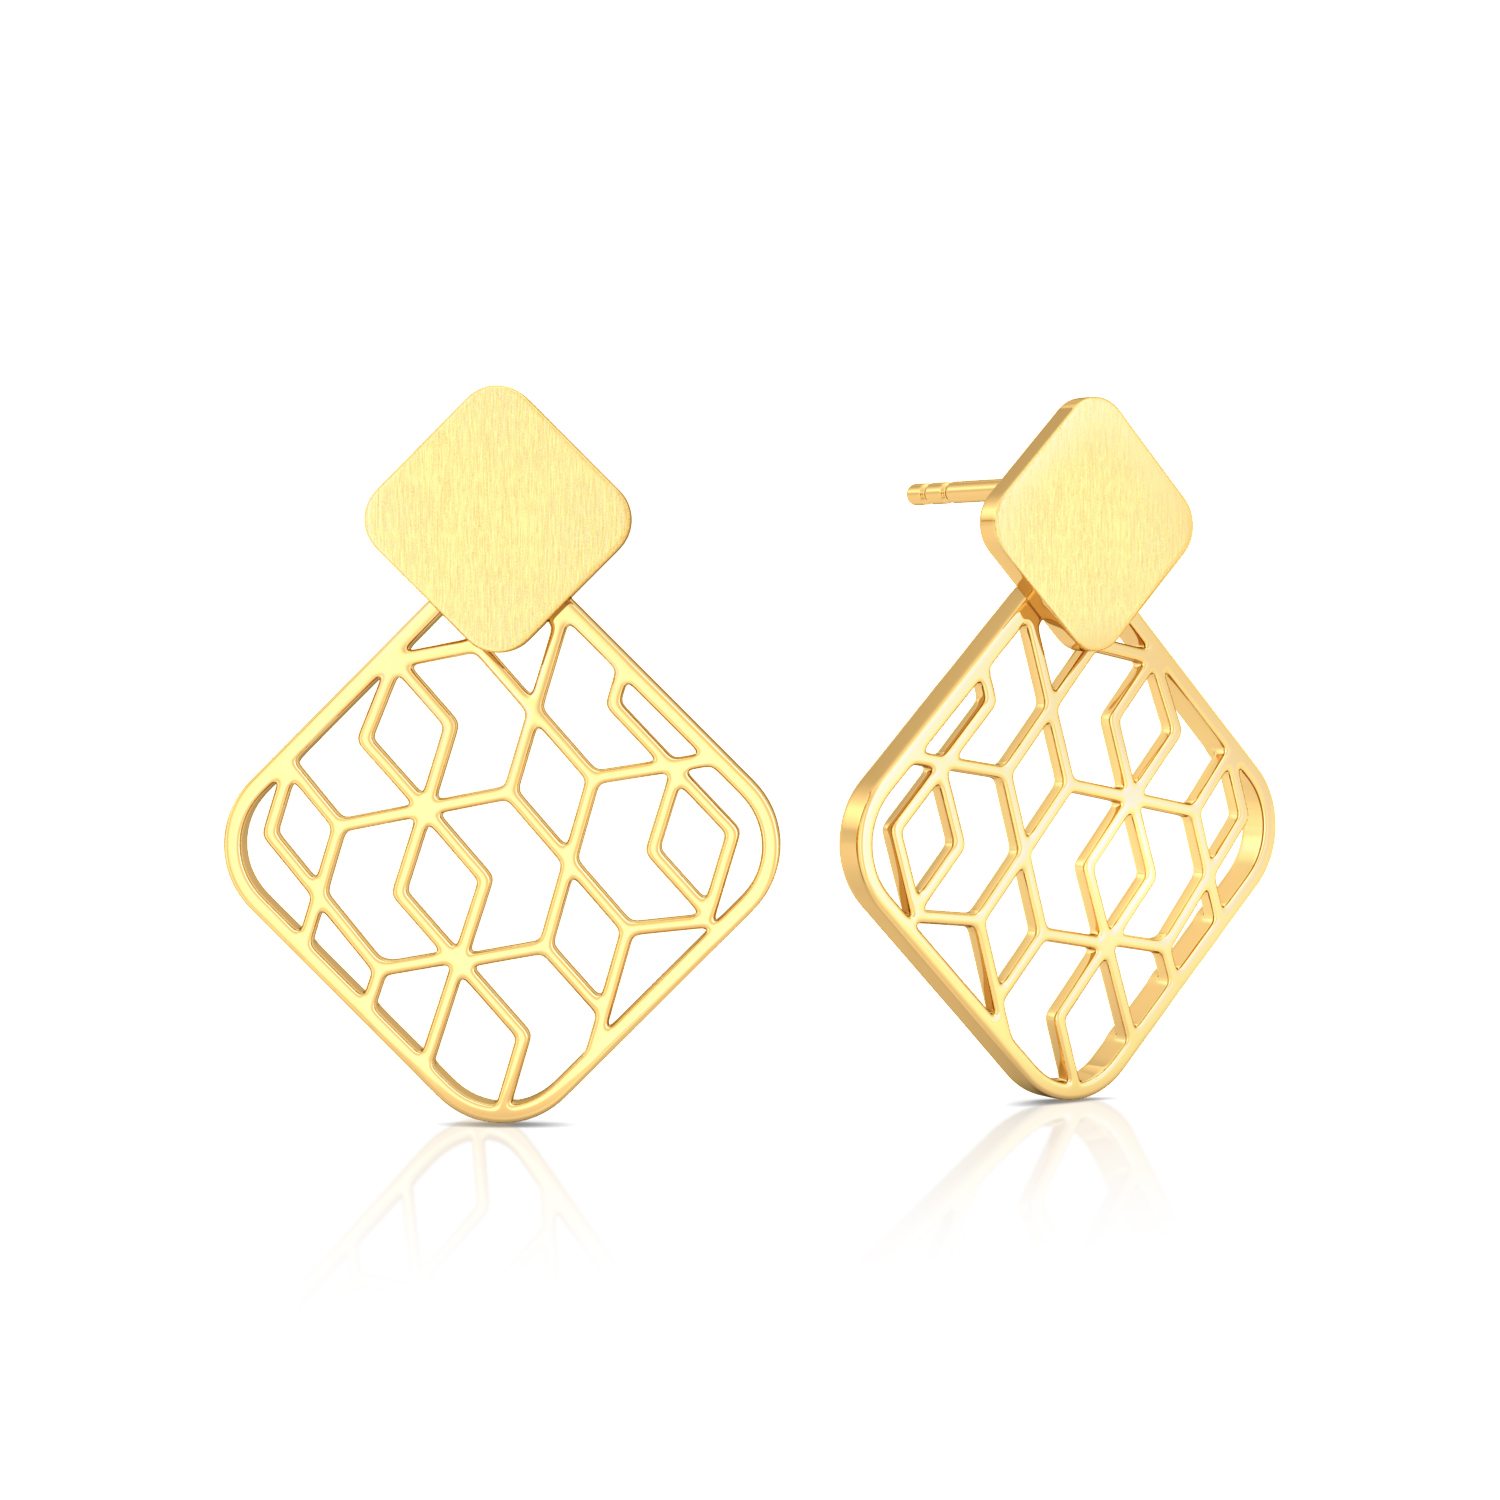 On The Square Gold Earrings